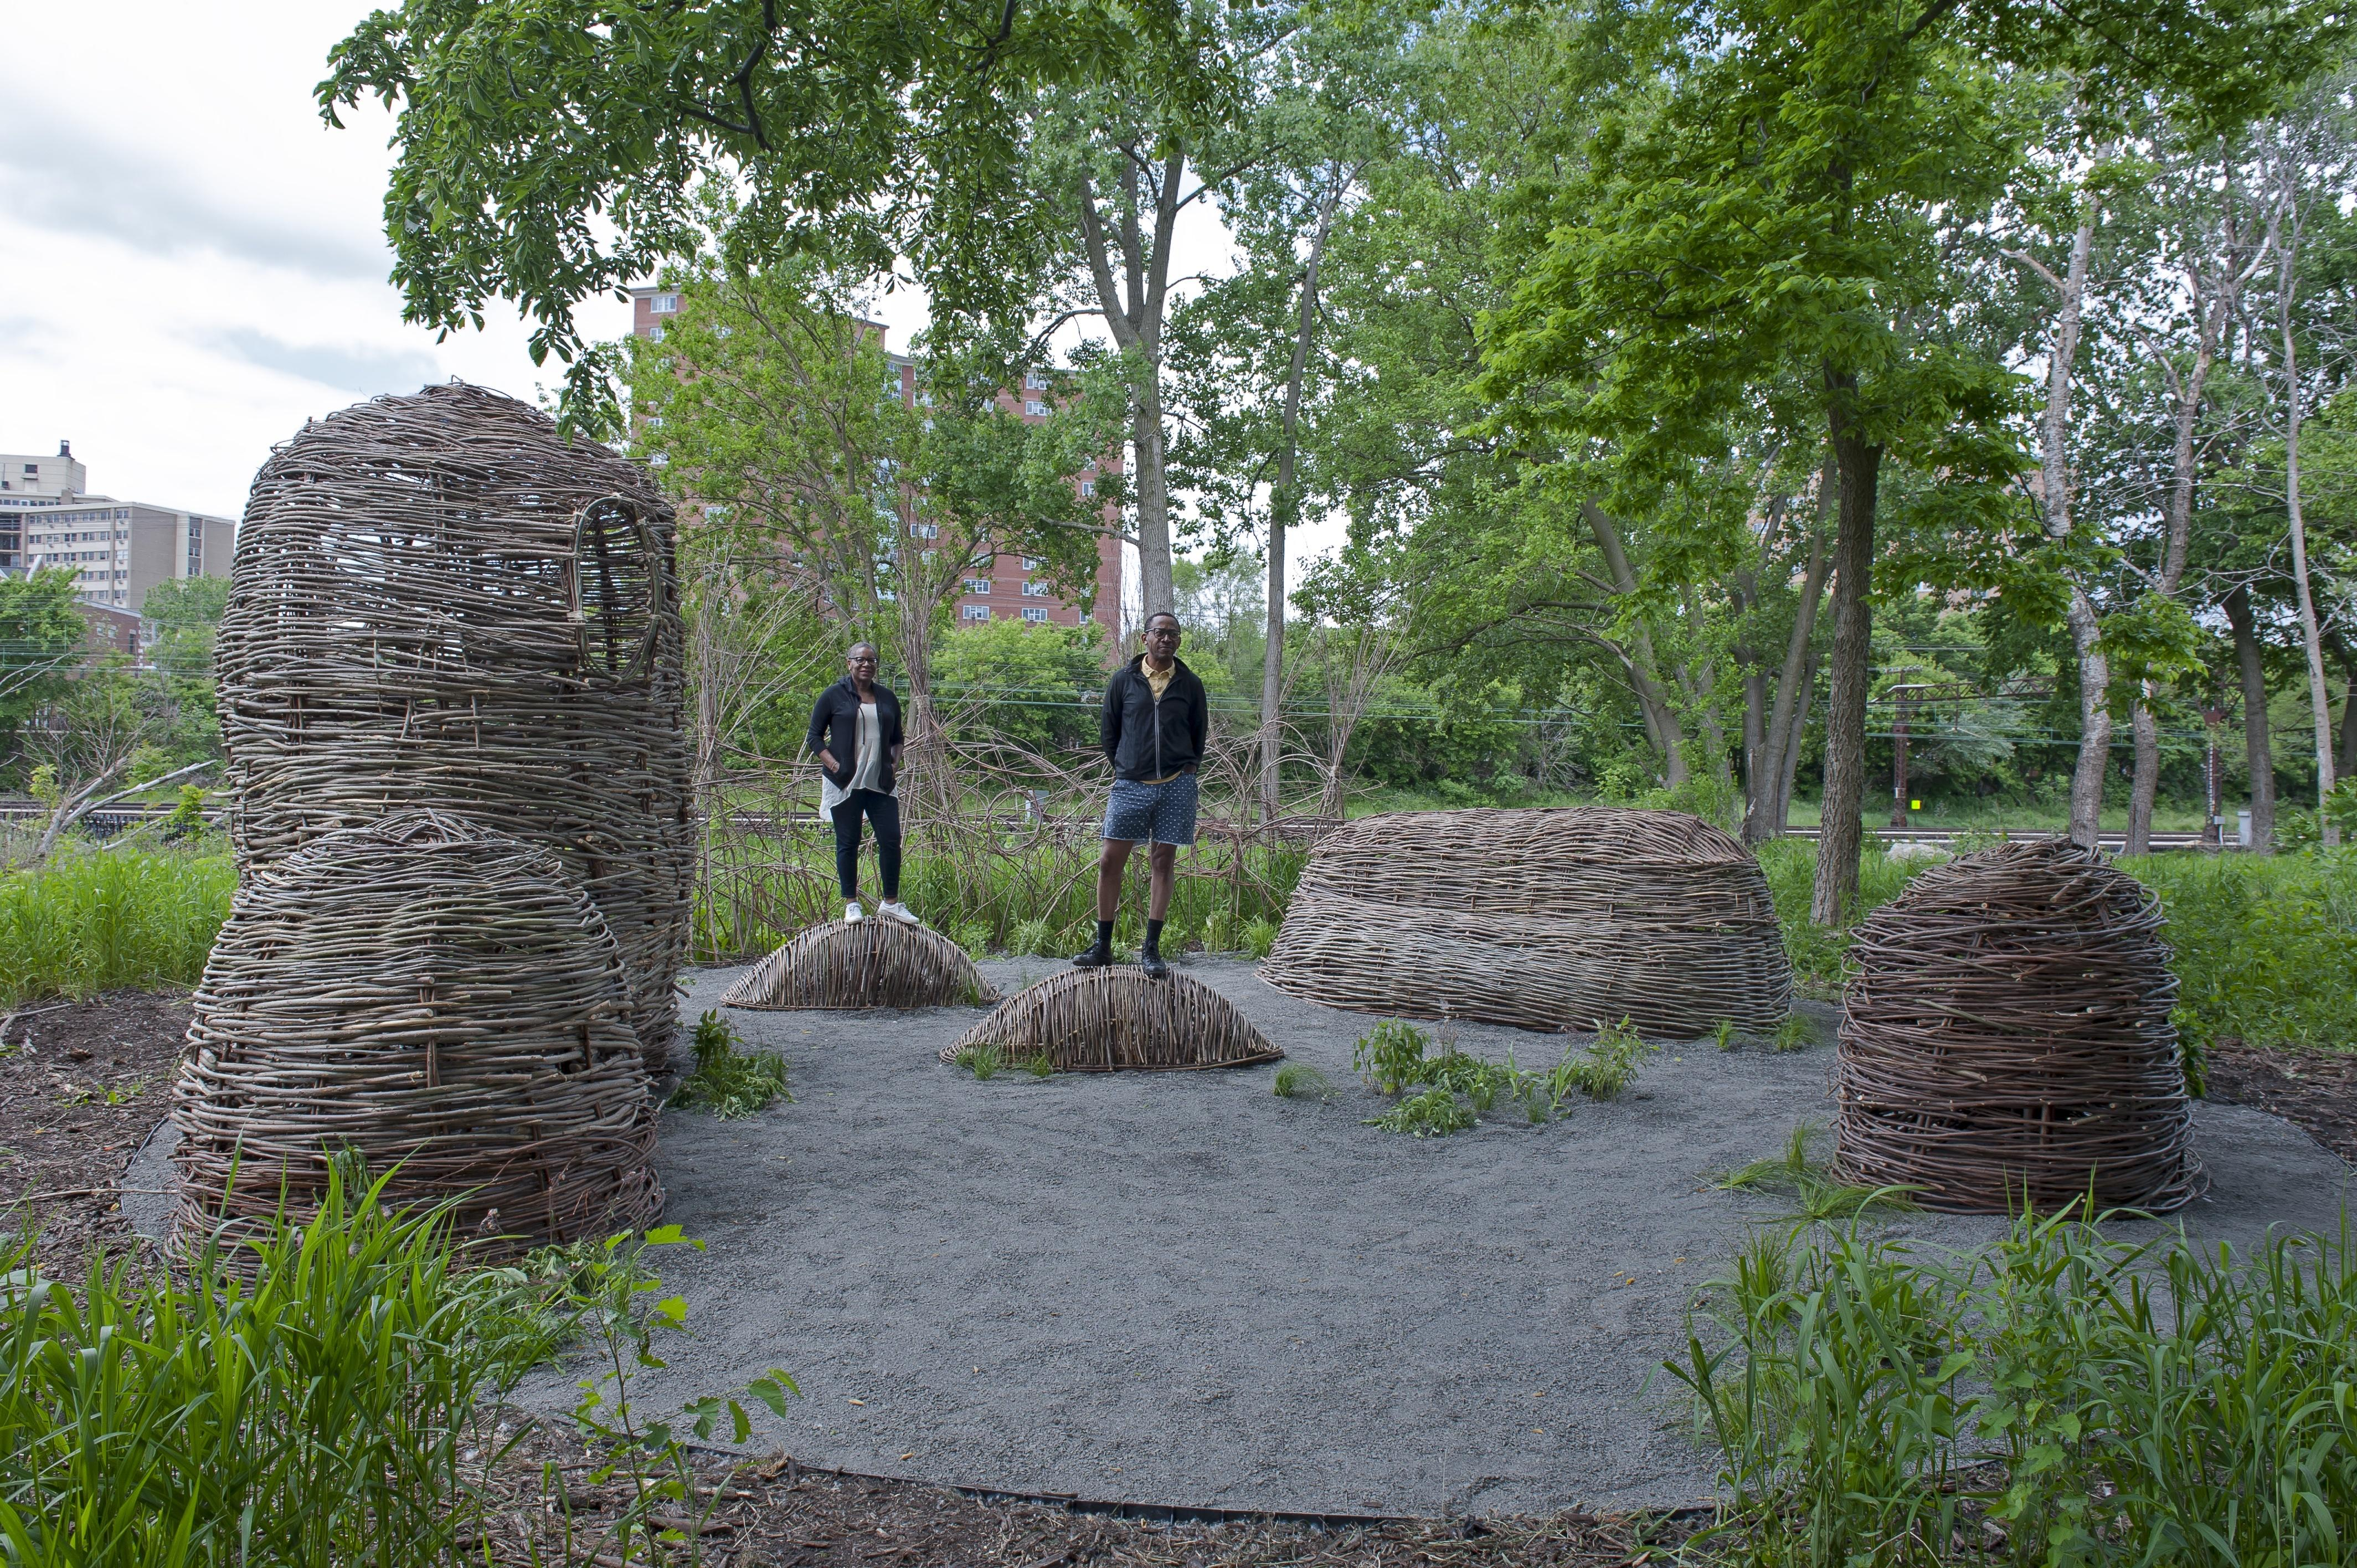 Two people stand on small mounds that are woven like wicker baskets. They are surrounded by four other similar mounds and urban greenery.